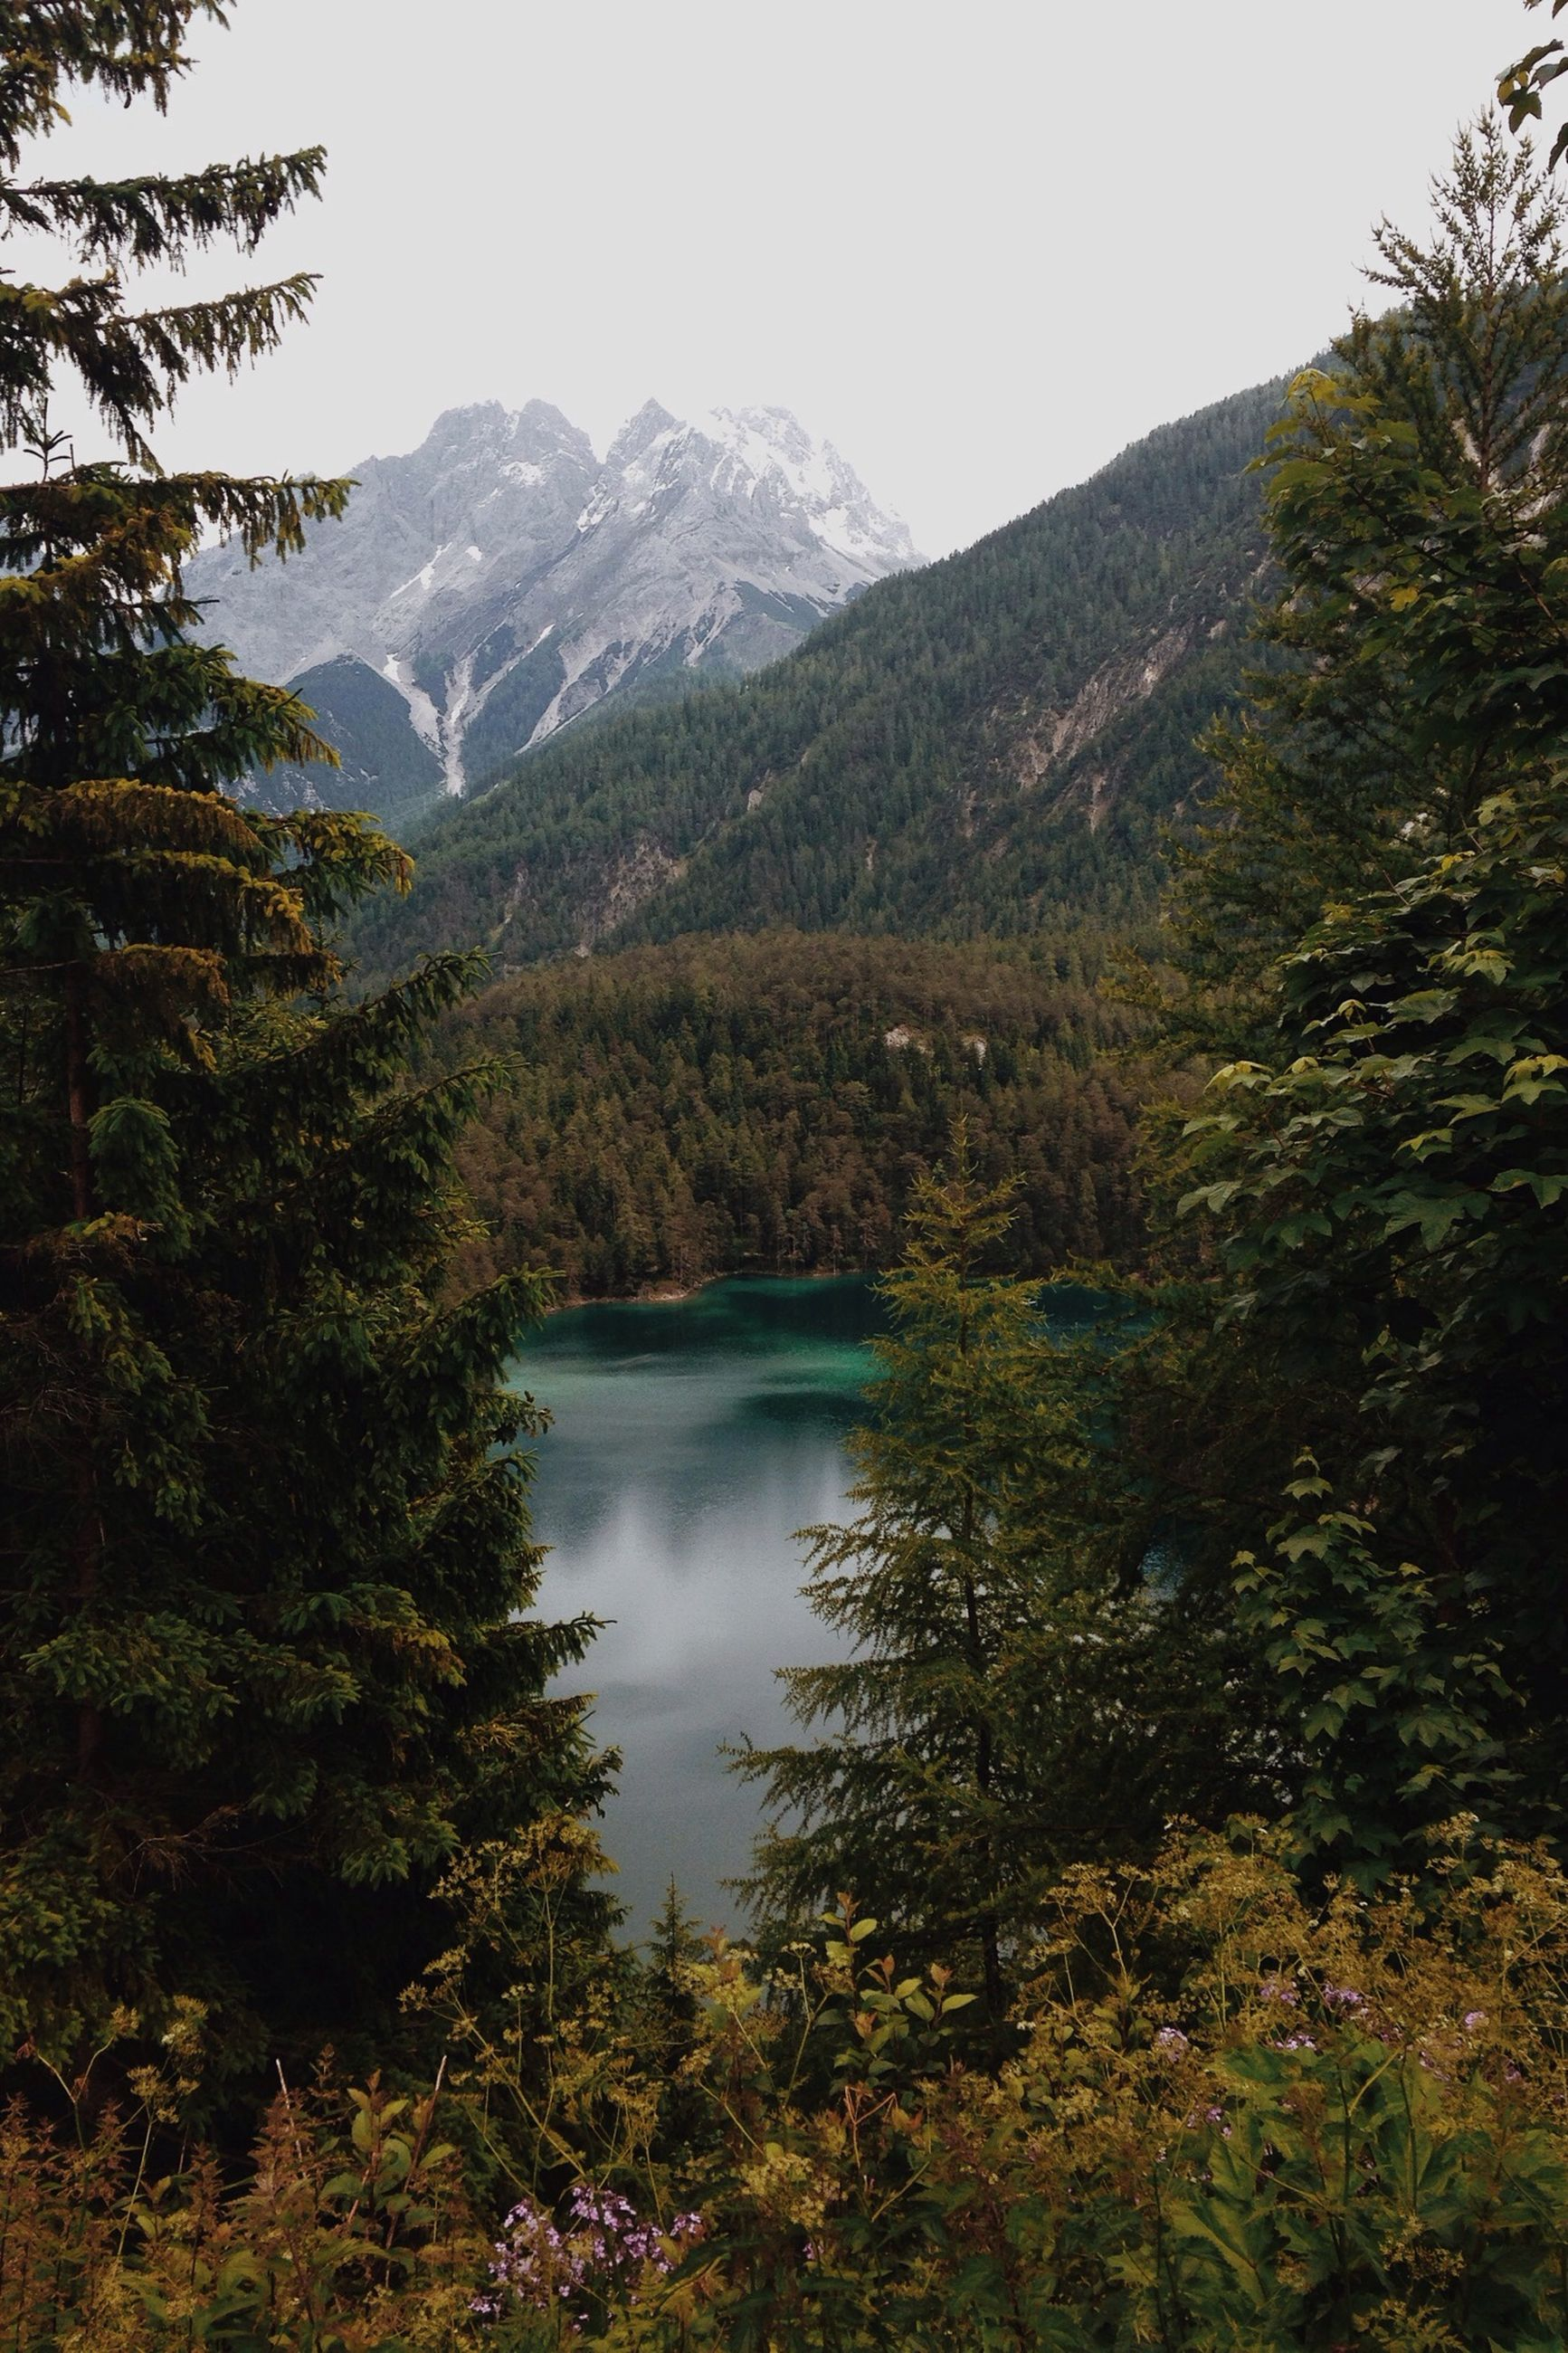 mountain, tranquil scene, tranquility, scenics, beauty in nature, mountain range, tree, water, lake, nature, non-urban scene, reflection, clear sky, landscape, idyllic, sky, river, forest, growth, day